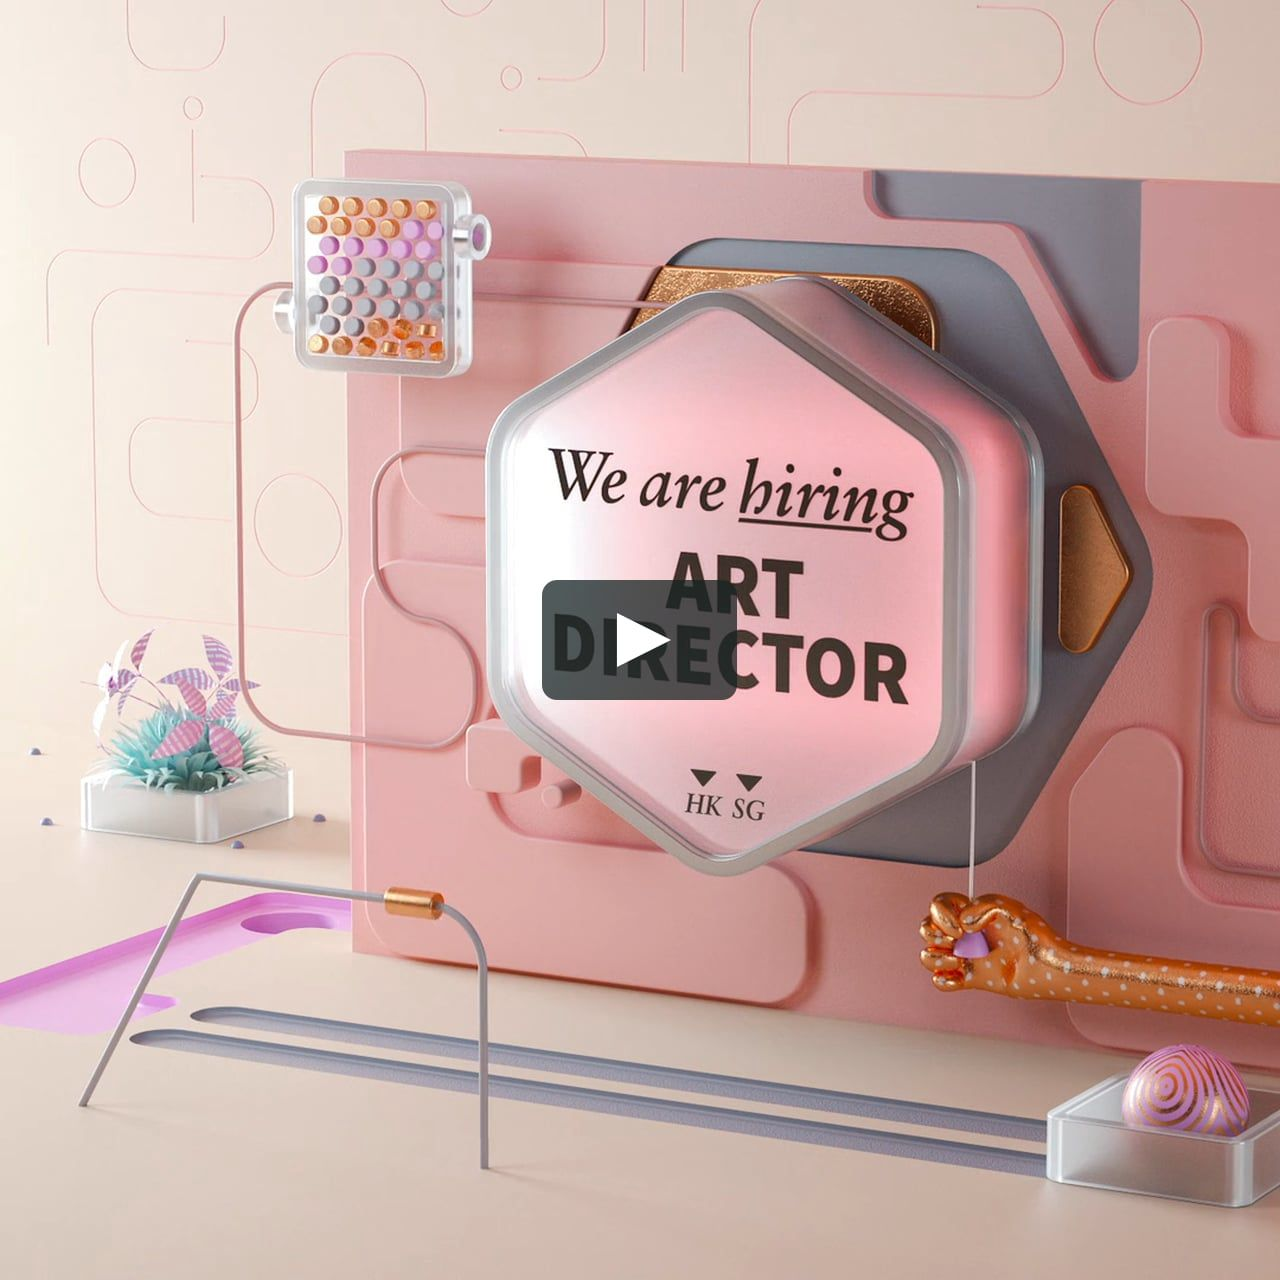 Our agency is growing and we're looking for motivated designers who hold themselves to a high standard. We specialise in all things video - from motion graphics… #motiongraphic